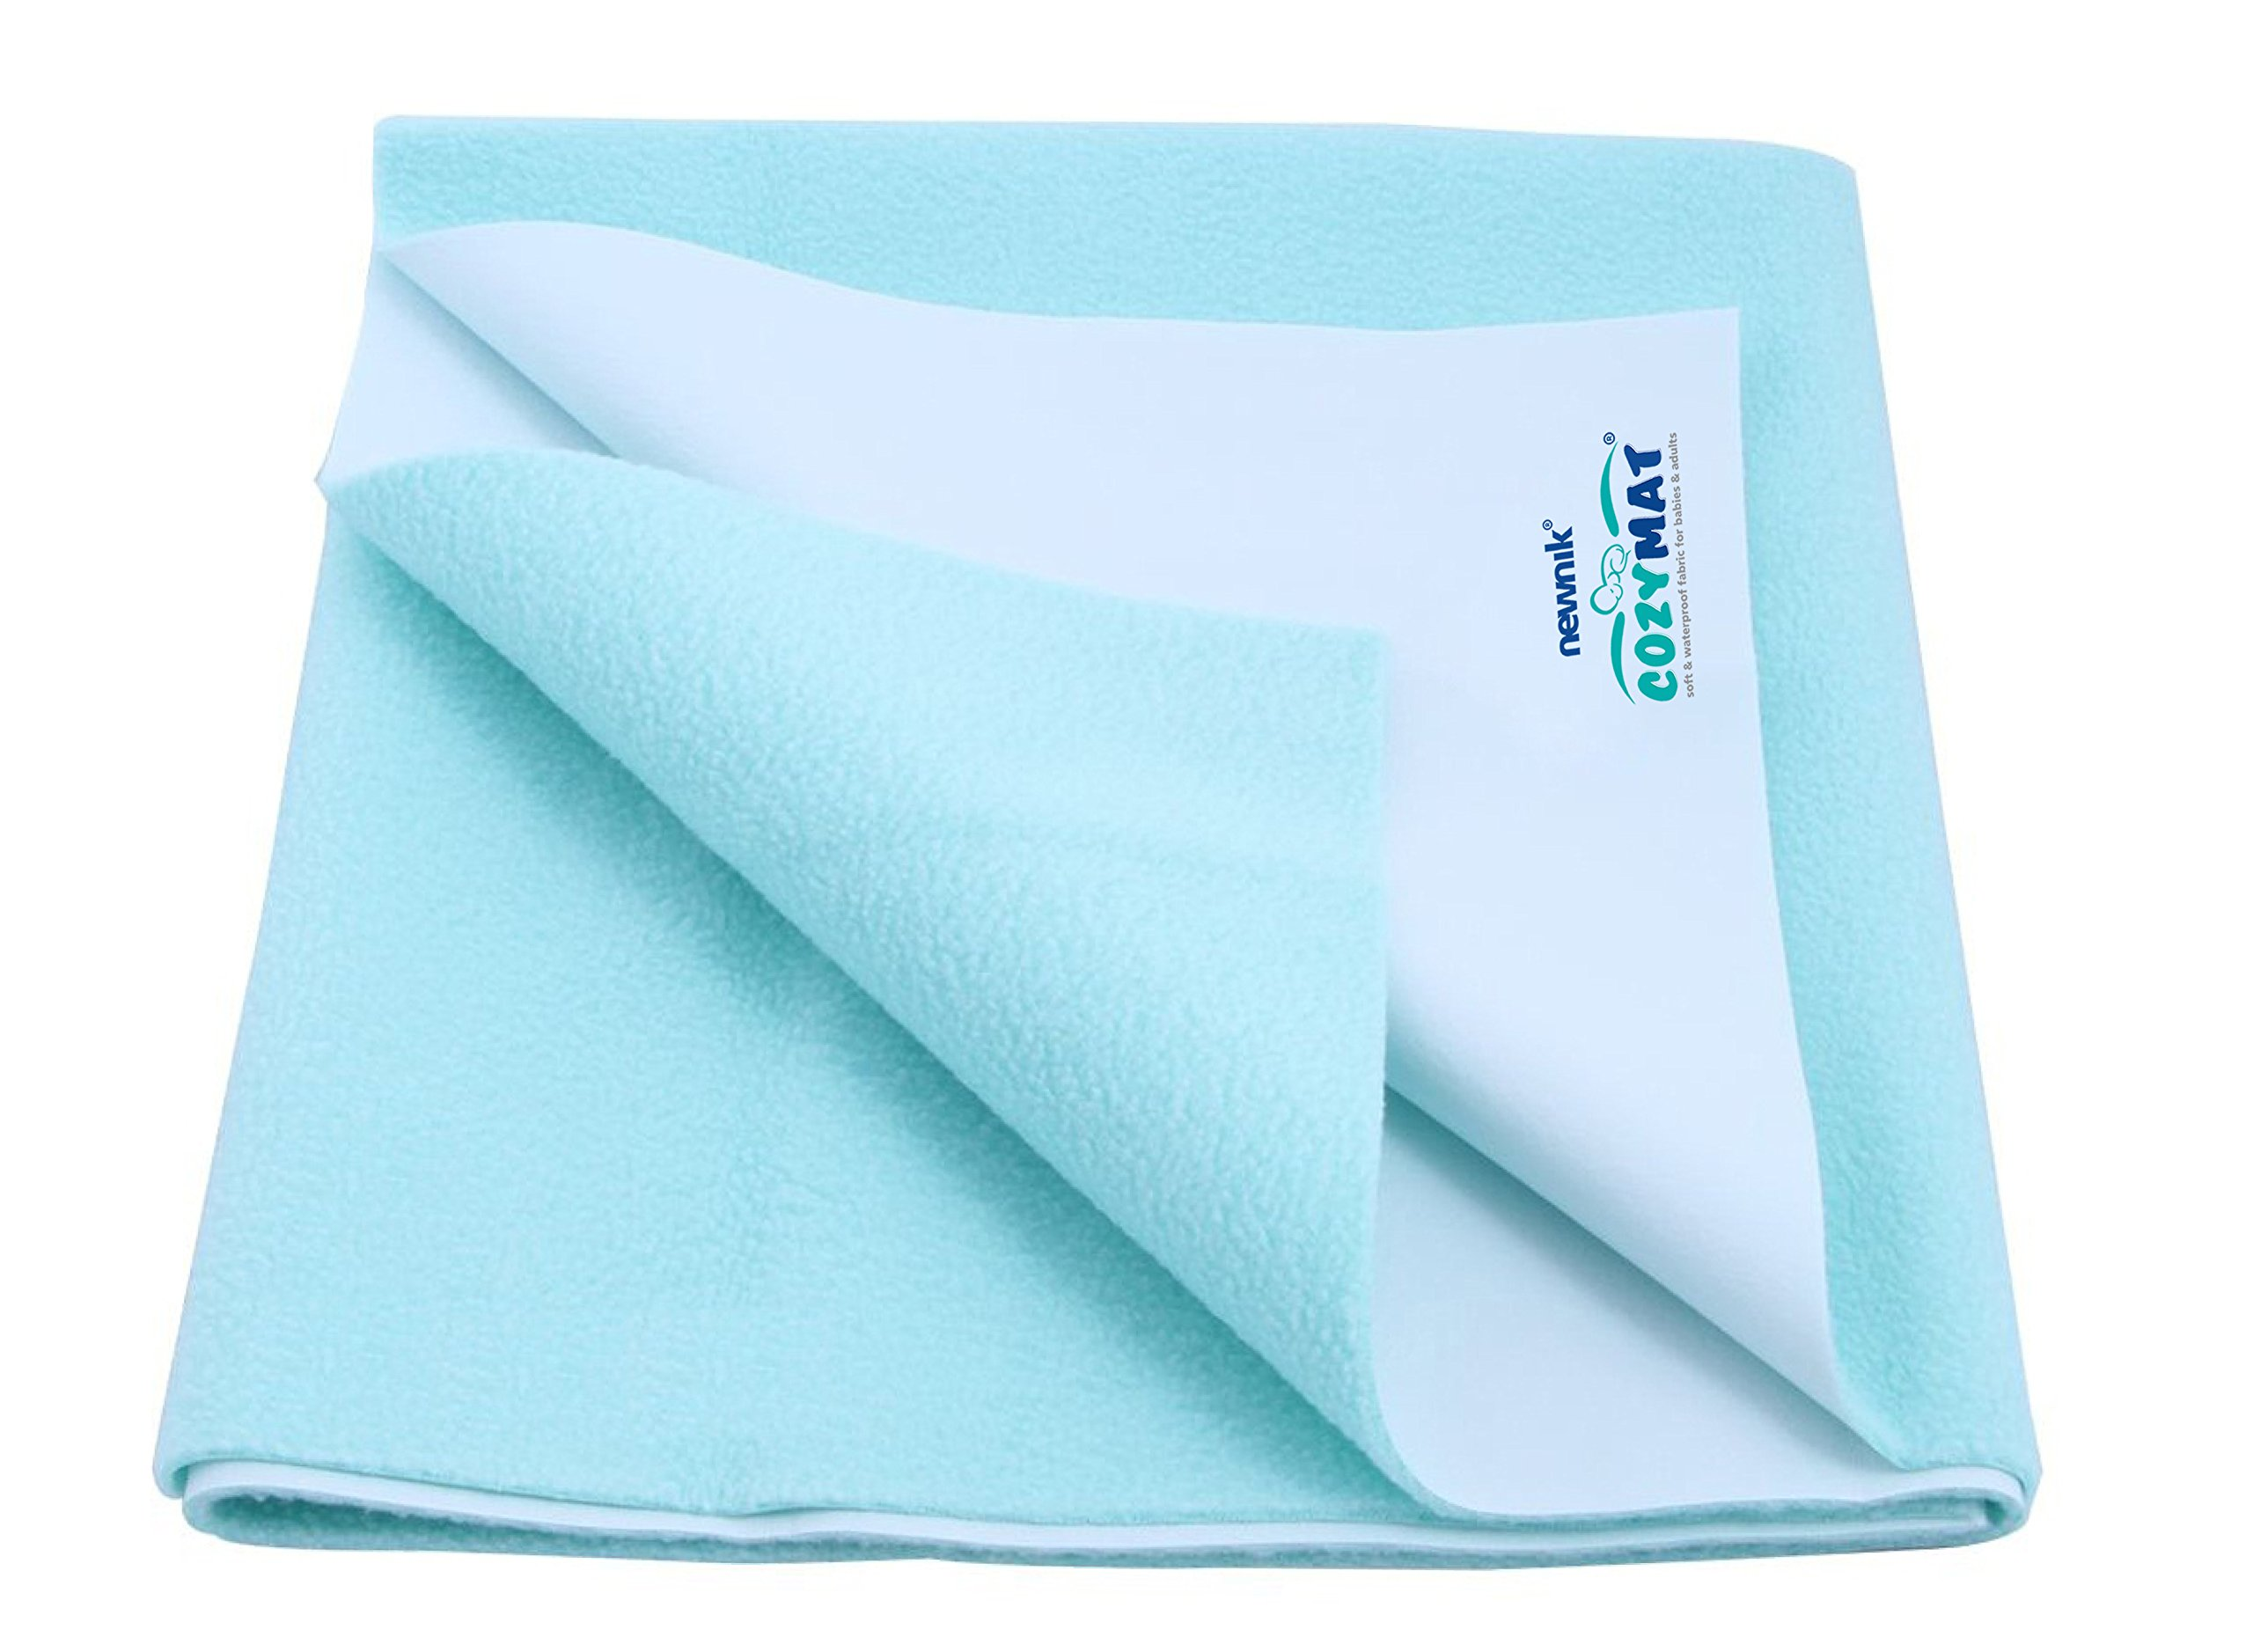 Cozymat Dry Sheet Waterproof Breathable Bed Protector (Size: 140cm X 100cm) Sea Green, Large by cozymat